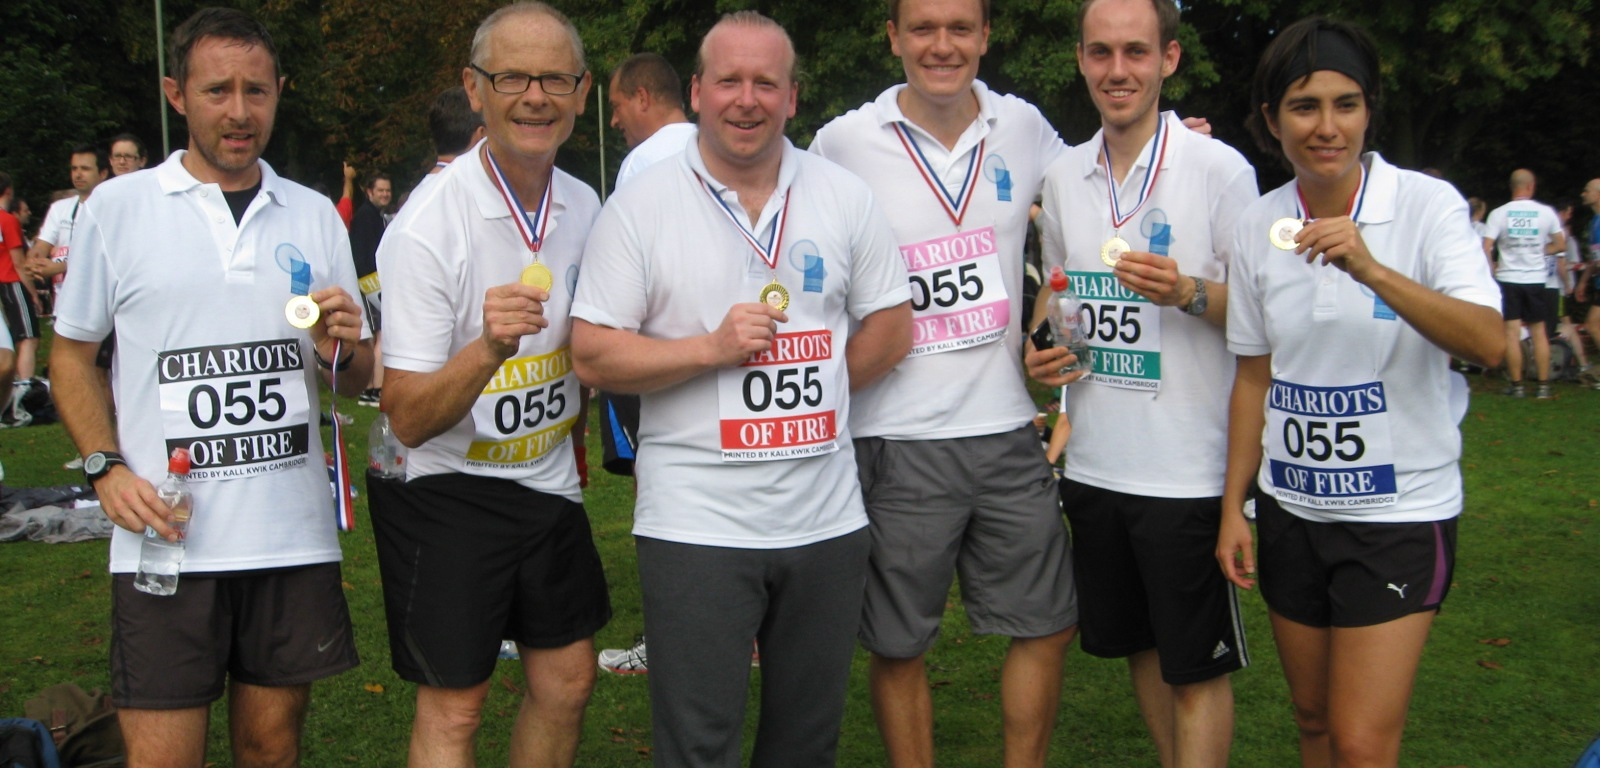 Chariots of Fire 2013